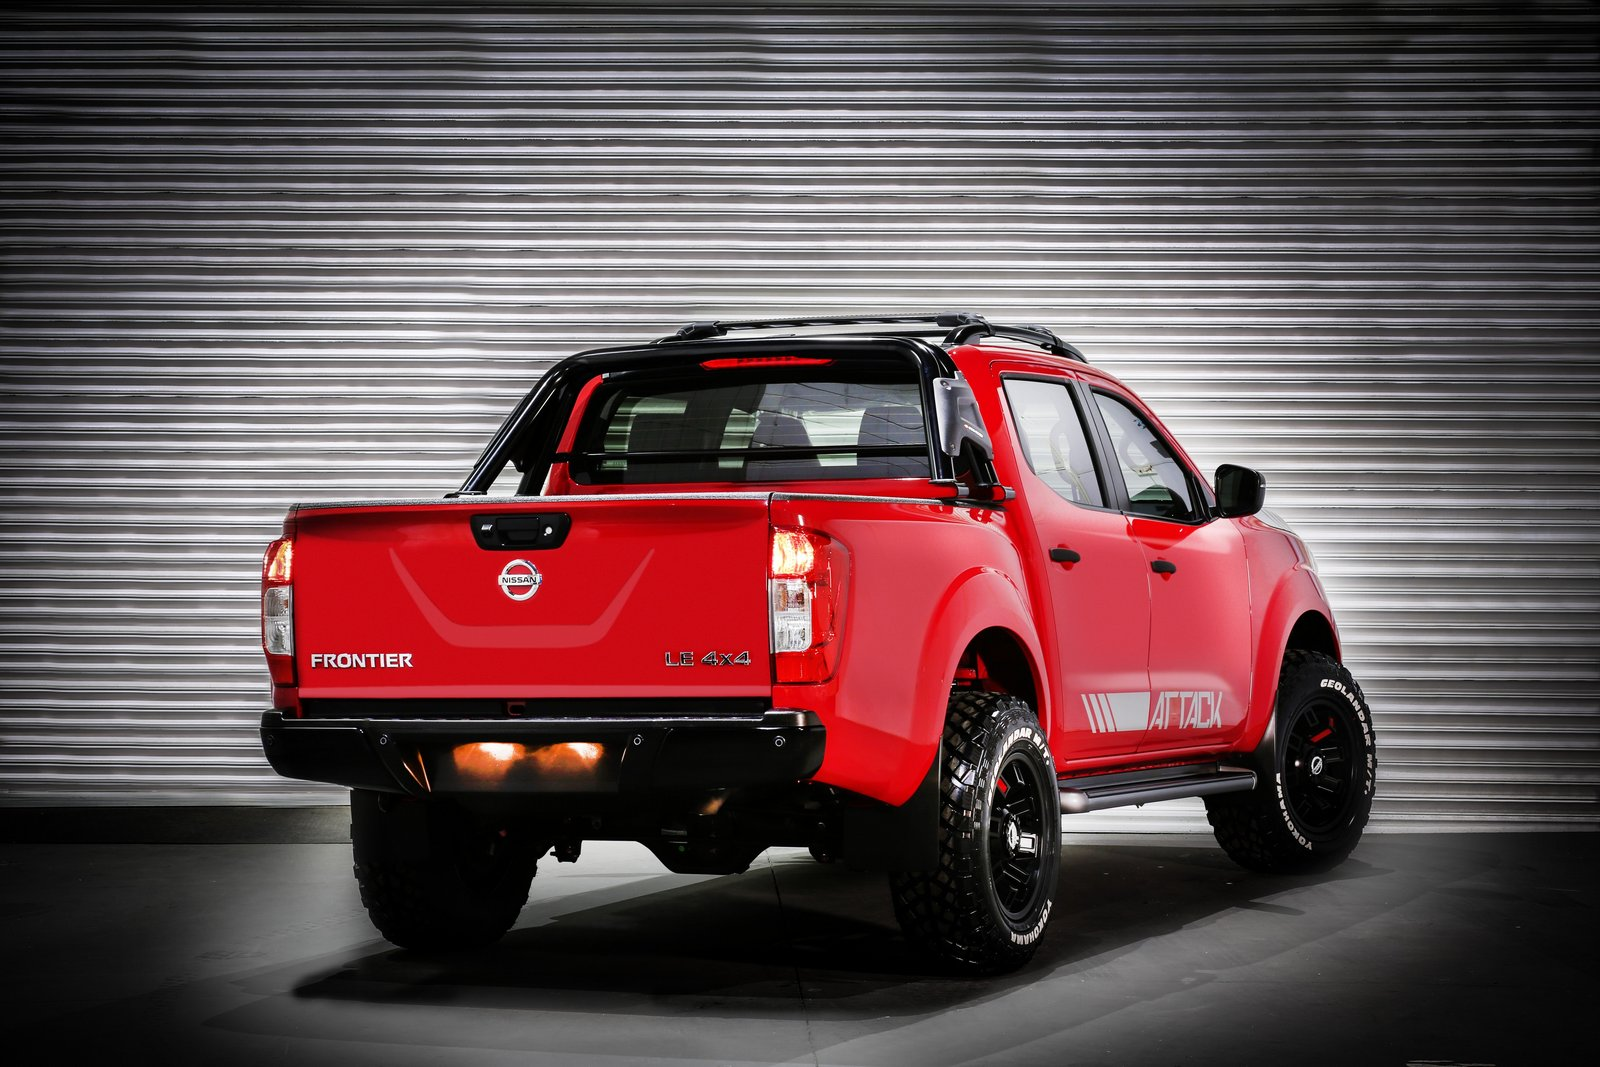 nissan frontier attack concept unveiled in buenos aires carscoops. Black Bedroom Furniture Sets. Home Design Ideas